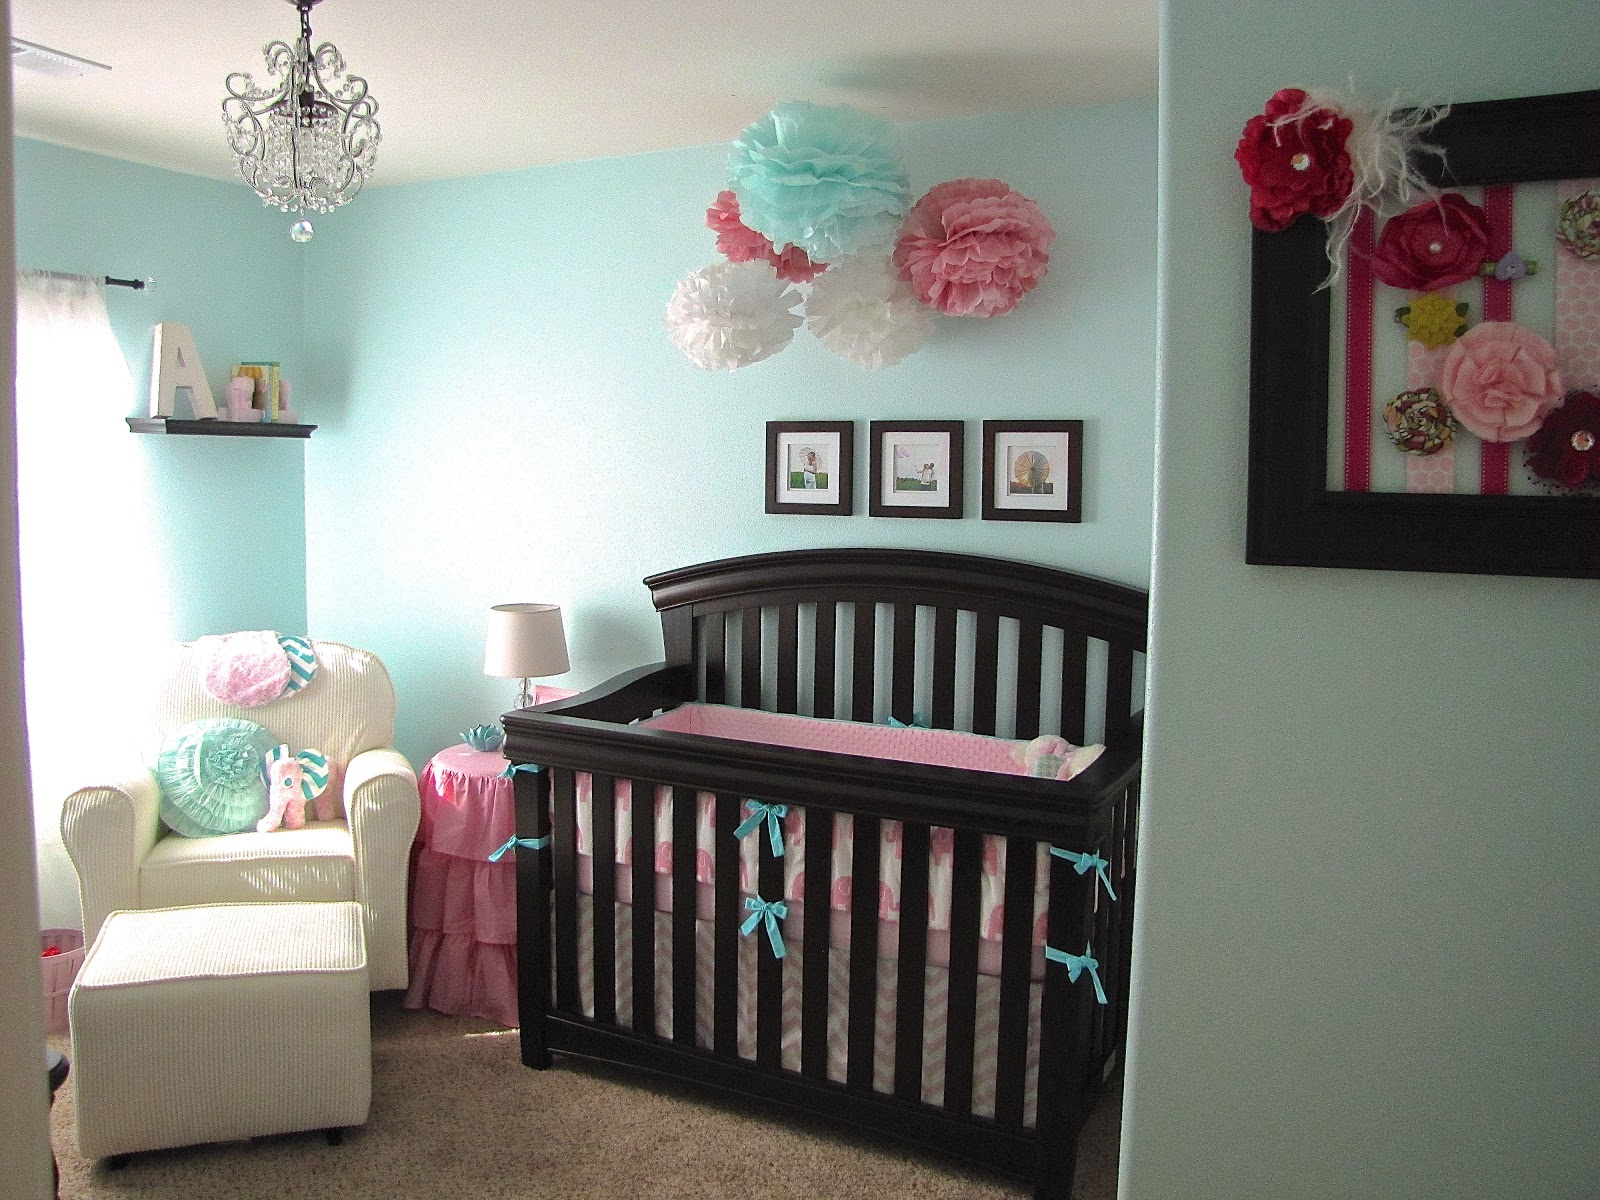 Emerson's Pink and Turquoise Nursery - Project Nursery  |Pink And Aqua Nursery